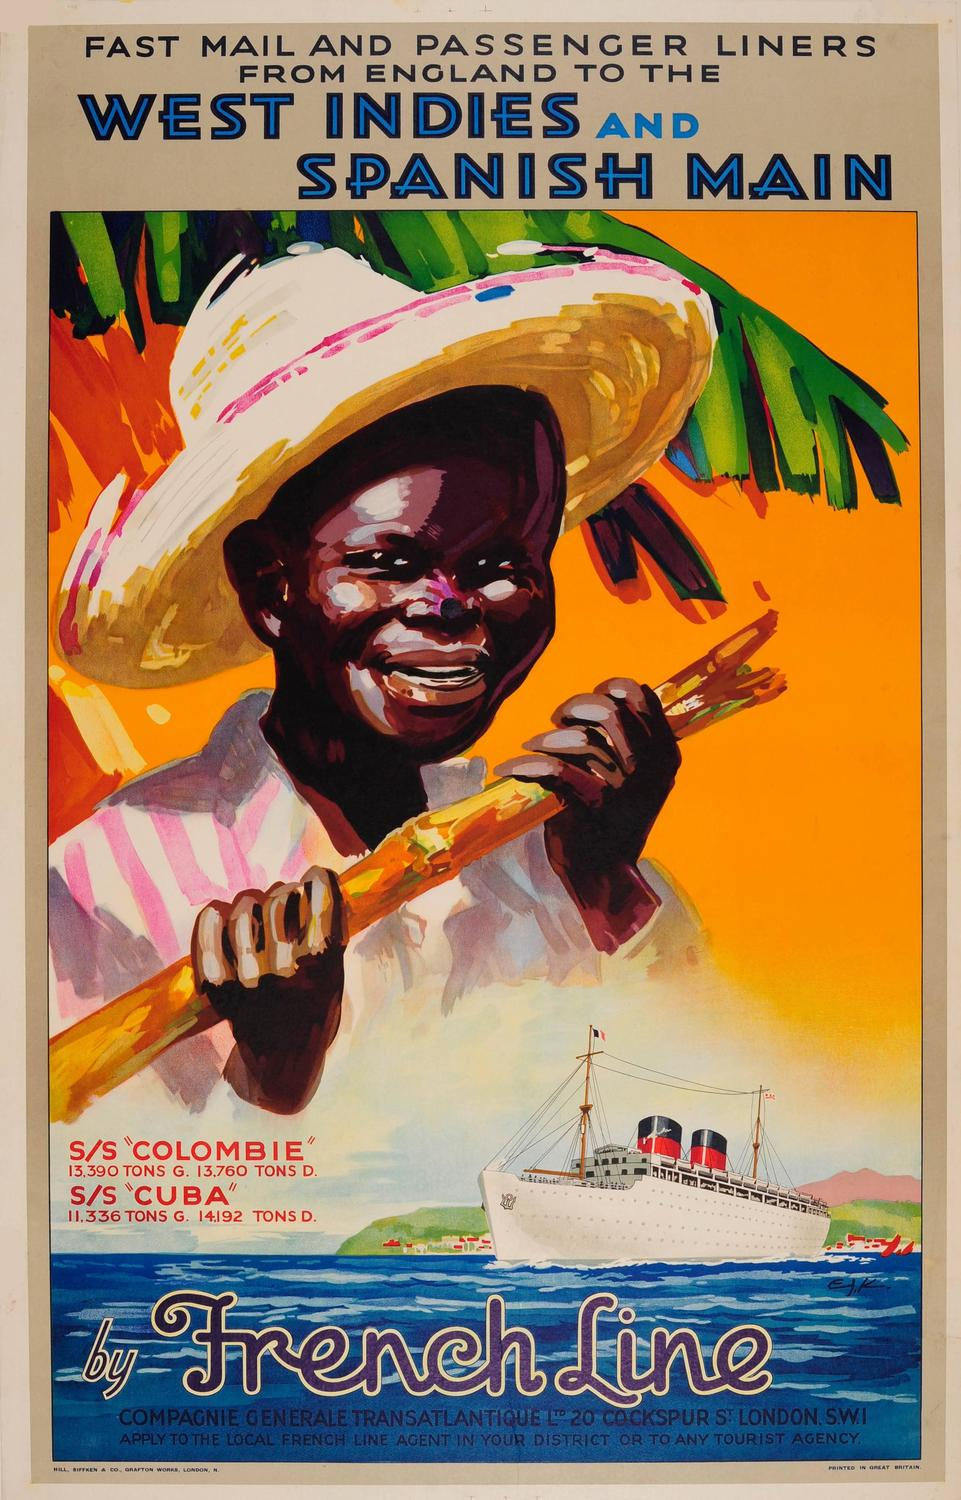 Unknown - Original 1930s French Line Poster: England To ...